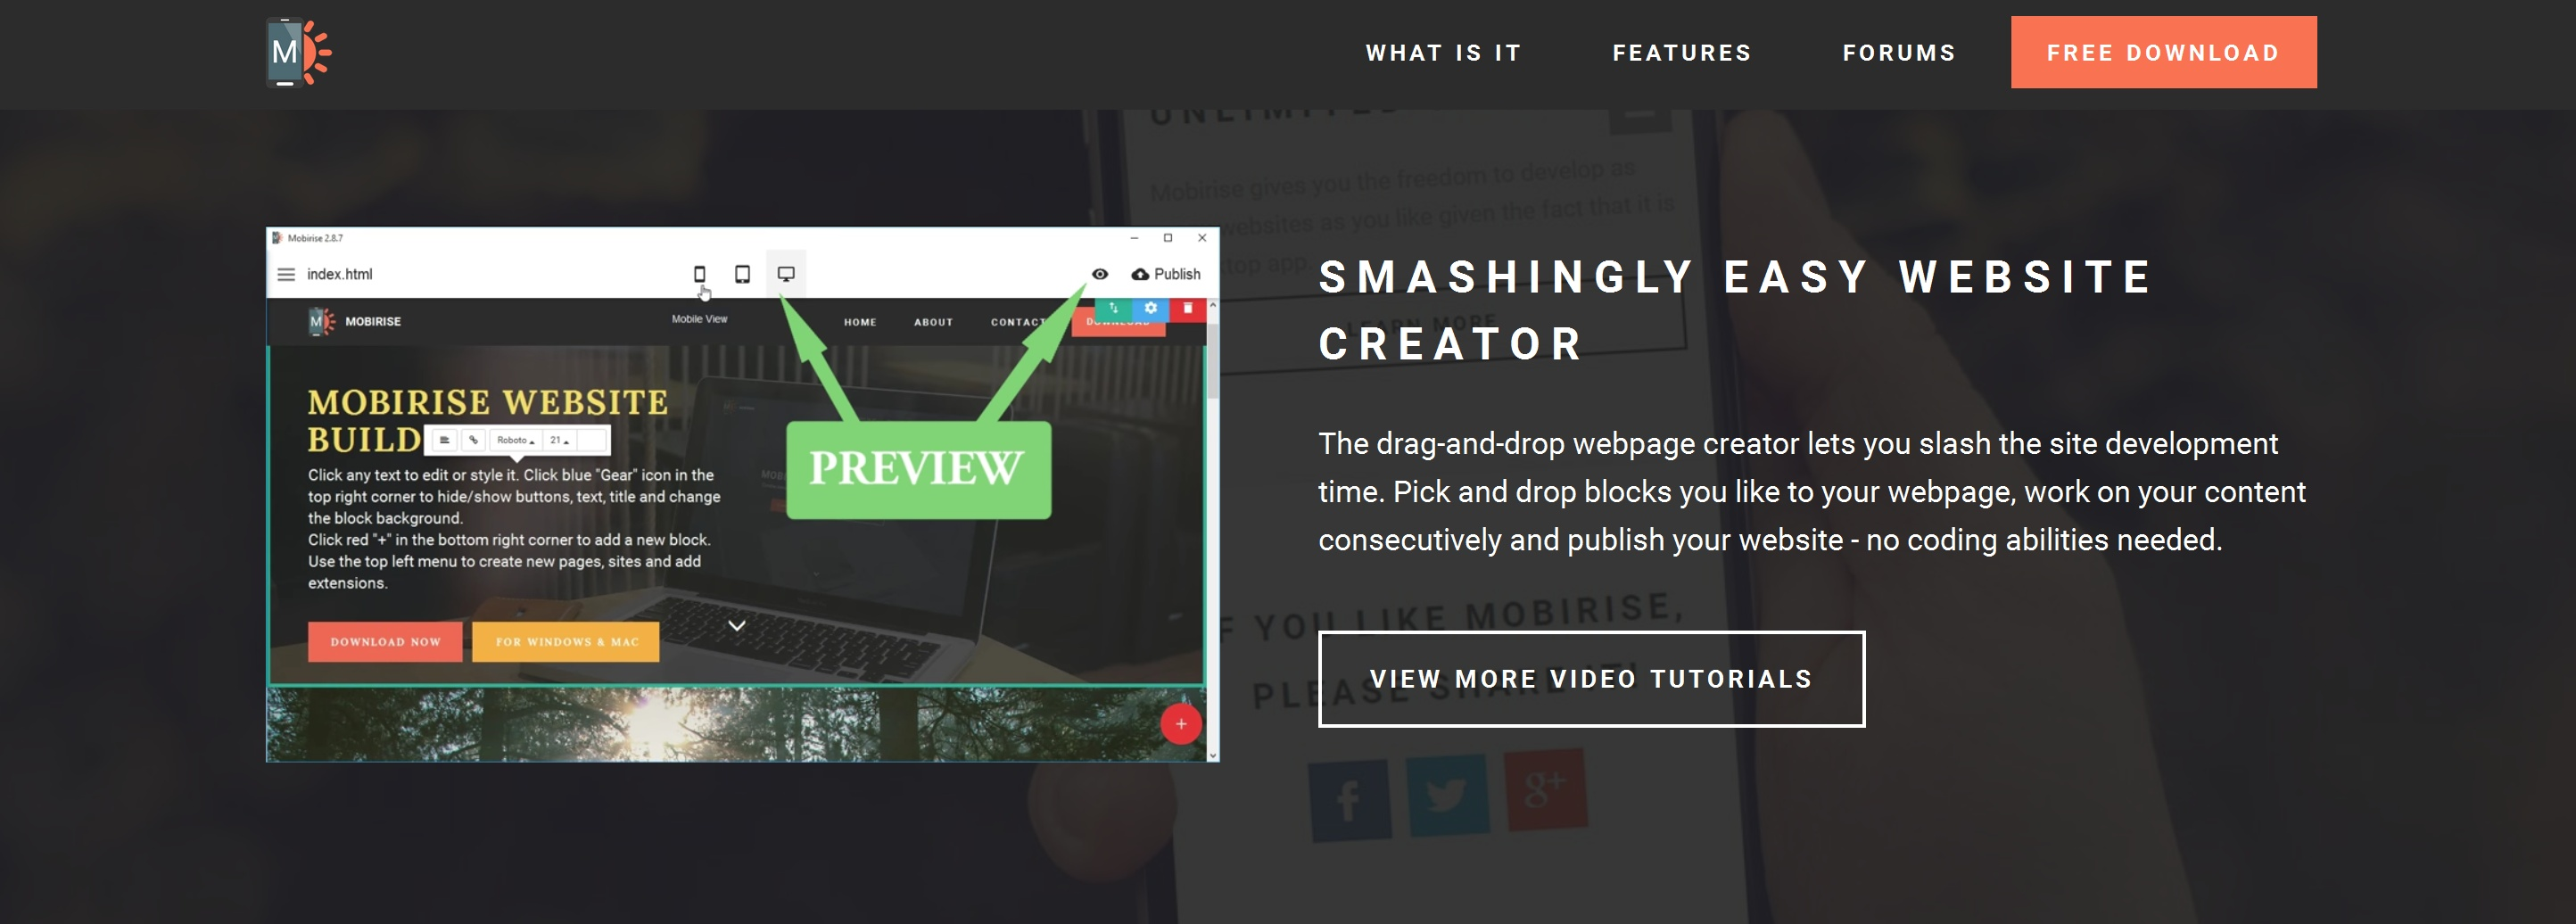 Quick WYSIWYG Web Page  Creator Review